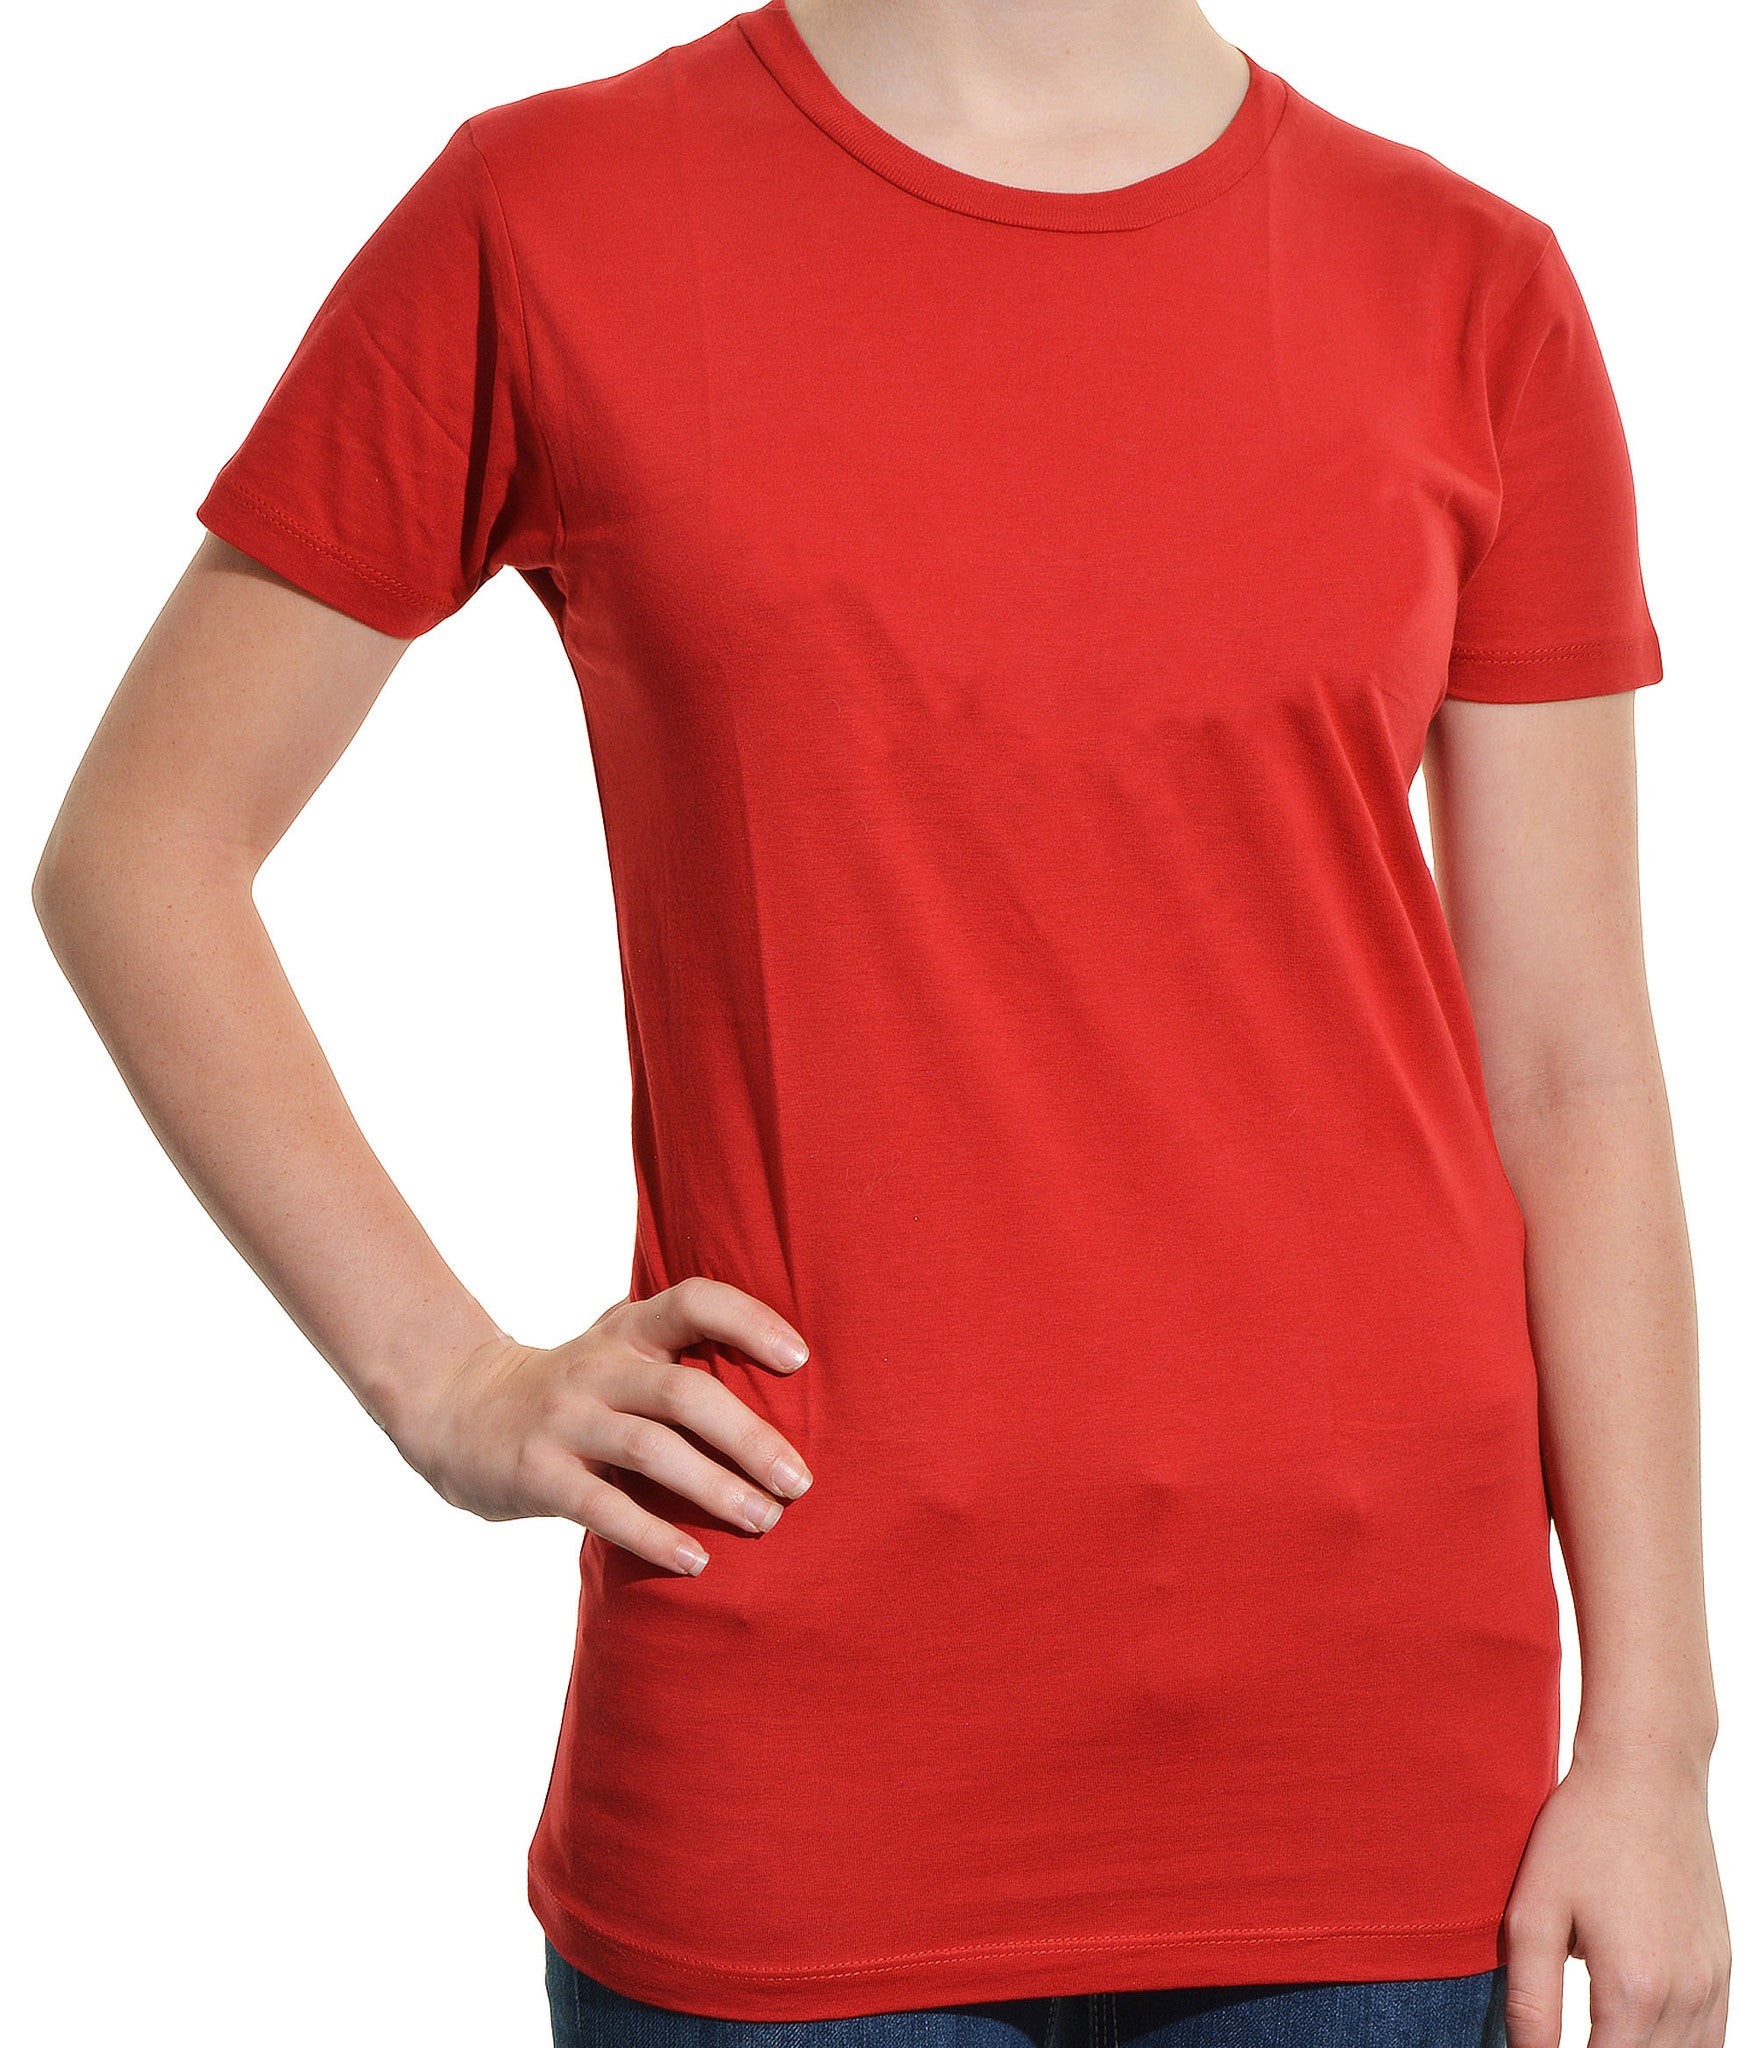 Alternative Apparel Crew Neck Short Sleeves Tee Shirt | Solid Red